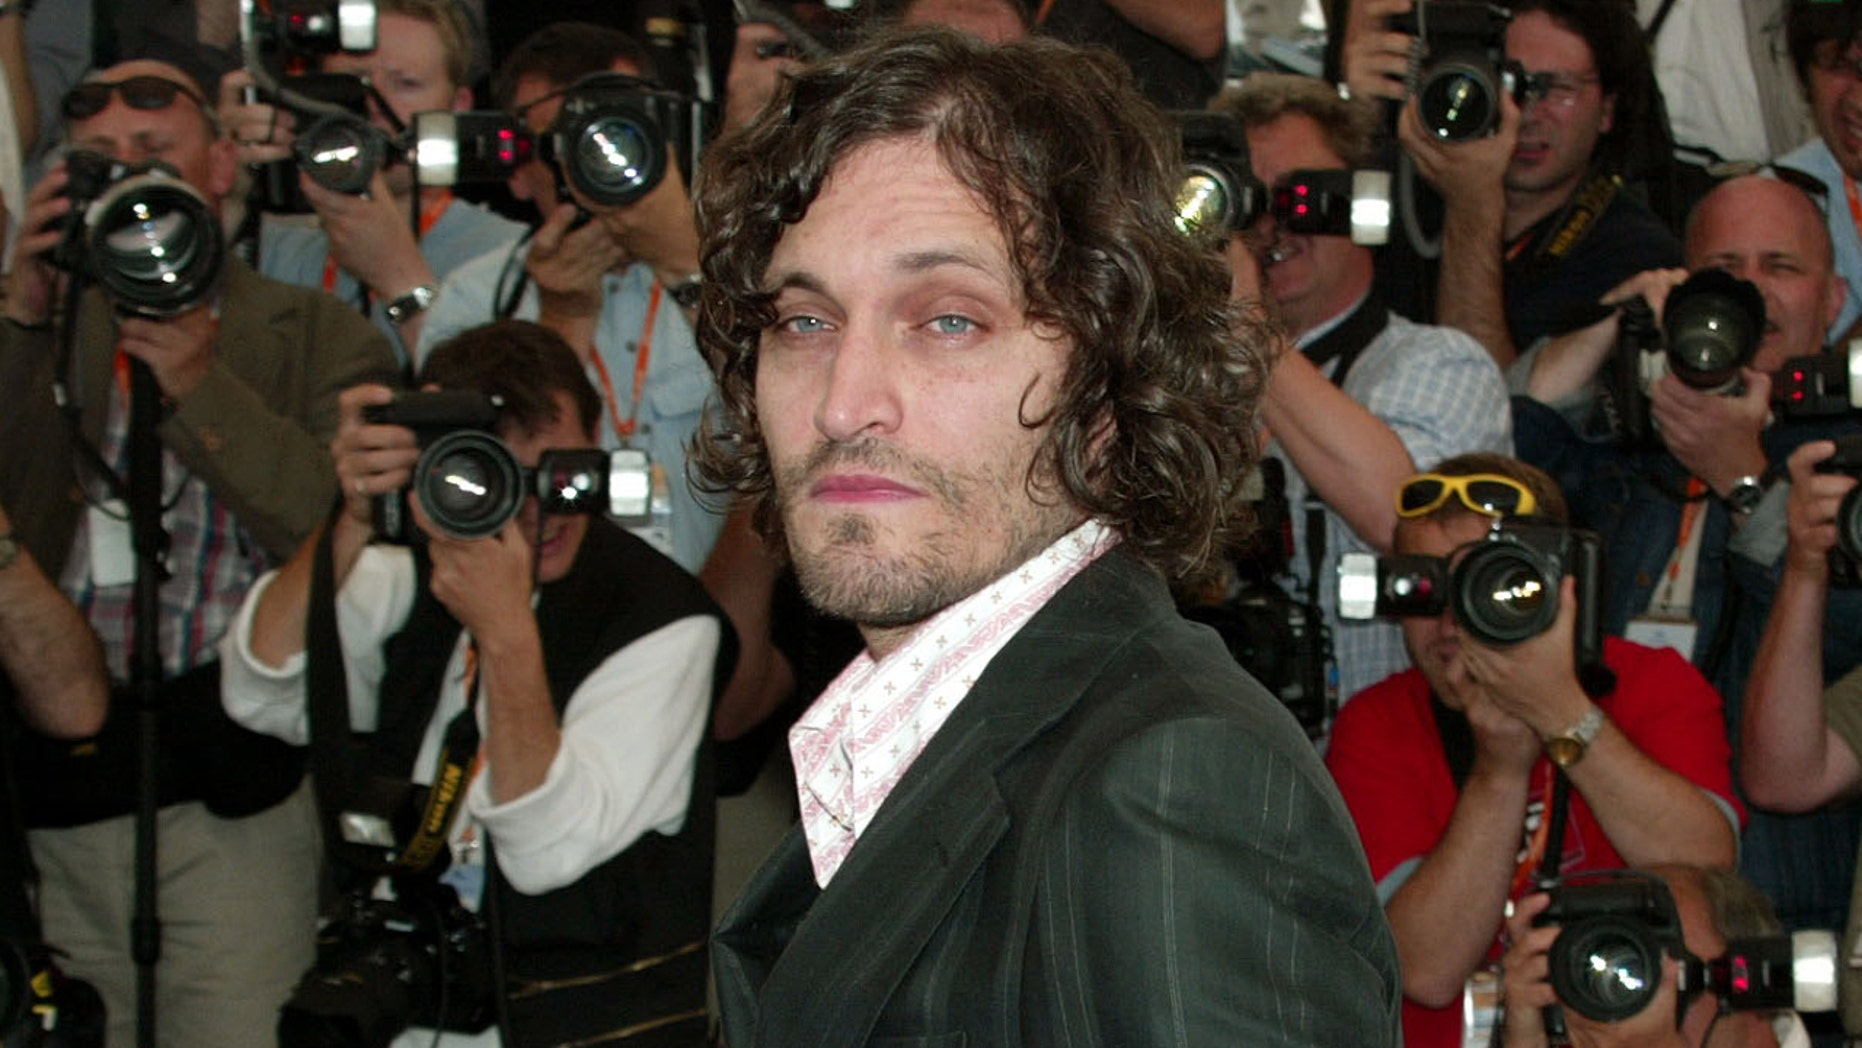 """US director and actor Vincent Gallo poses during a photocall for his film """"The Brown Bunny"""" at the 56th International Film Festival in Cannes, May 21, 2003. Gallo's film entry is one of twenty in competition for the Palme d'Or (Golden Palm) at the 12-day film festival on the French Riviera."""